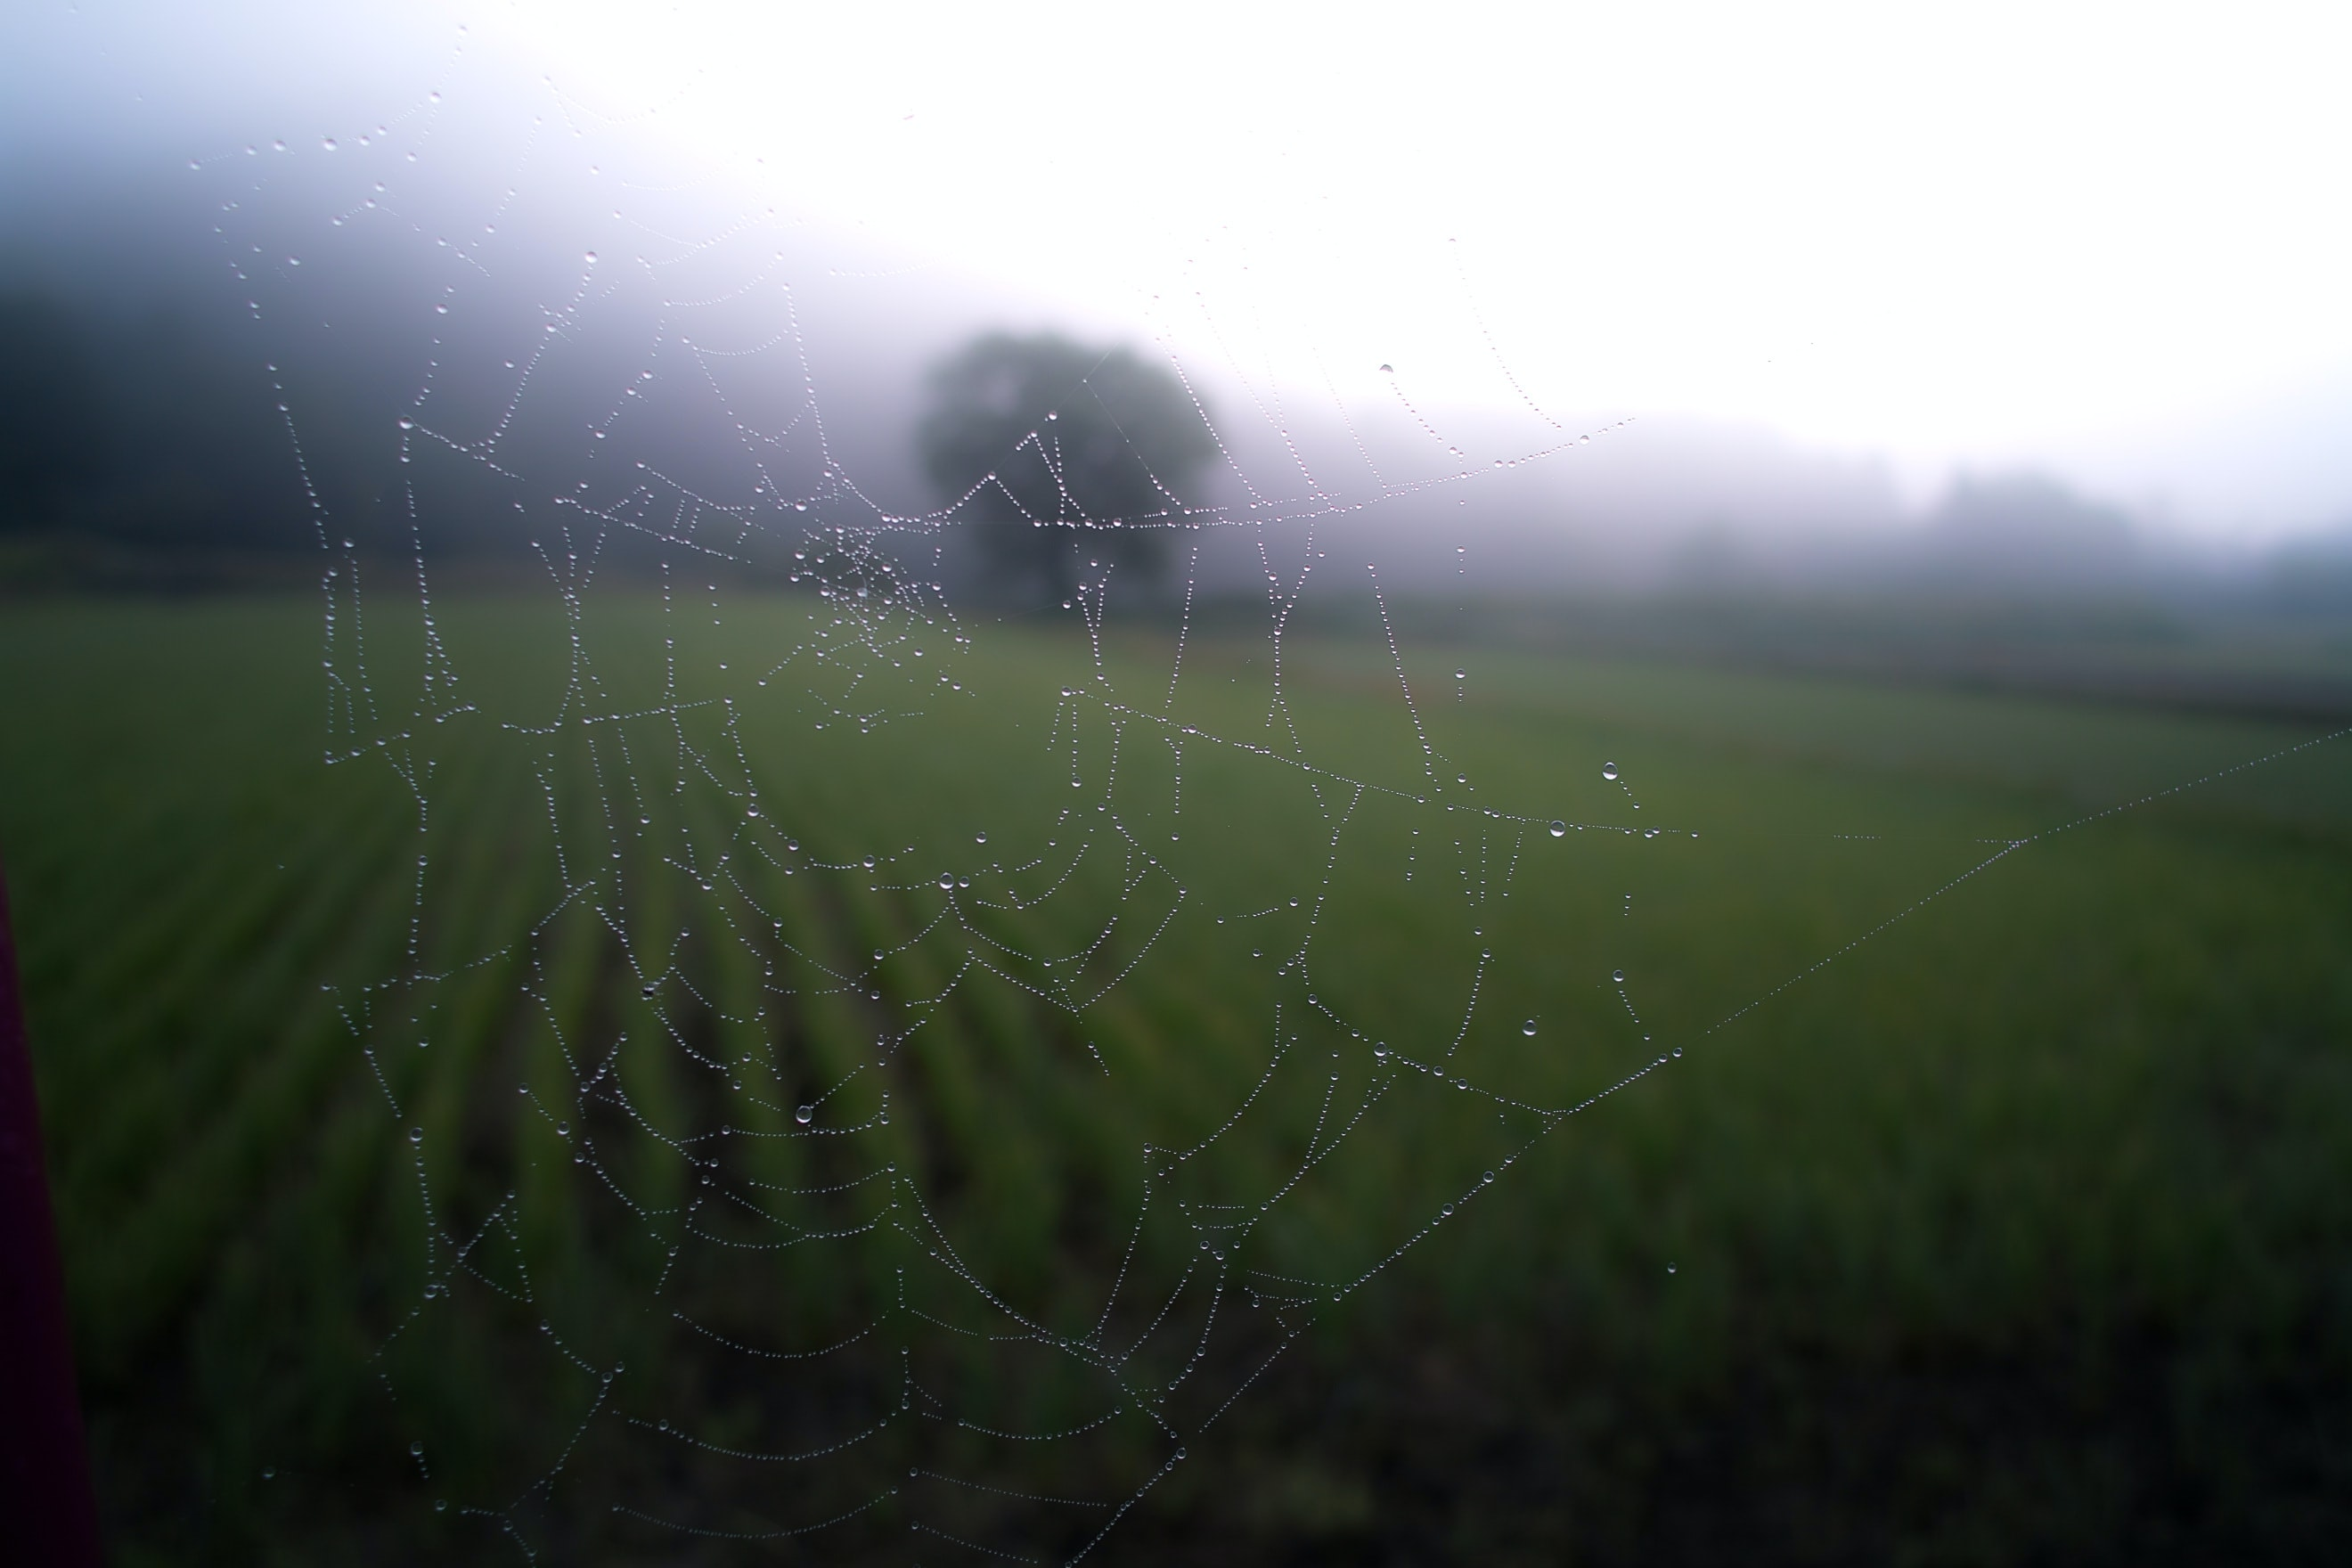 A spiderweb covered with tiny droplets of water against a backdrop of a green field